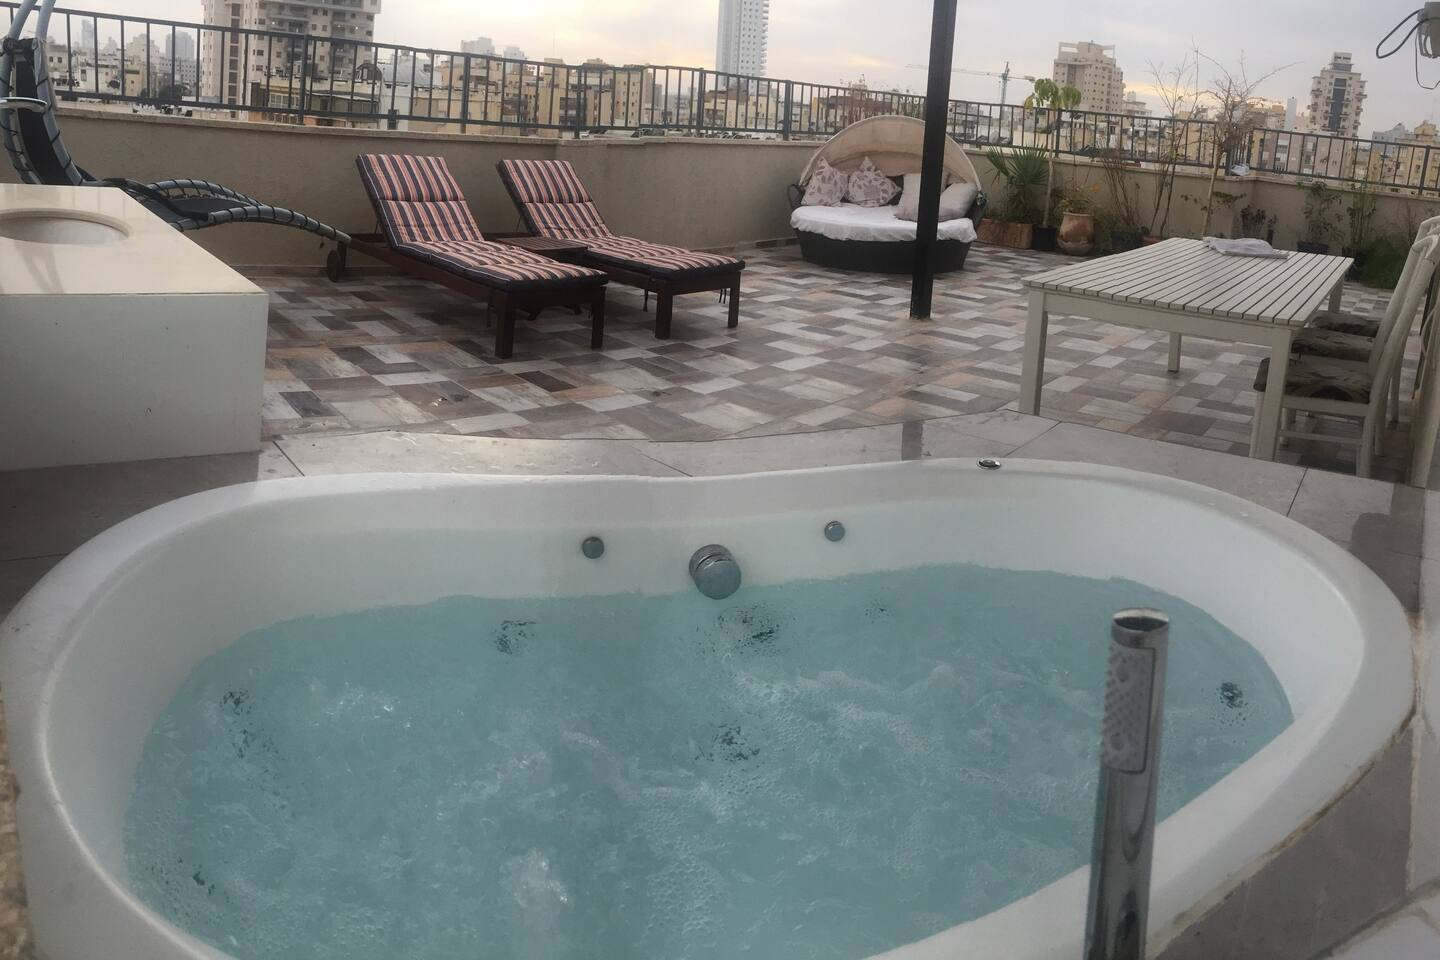 The jacuzzi in the terrace